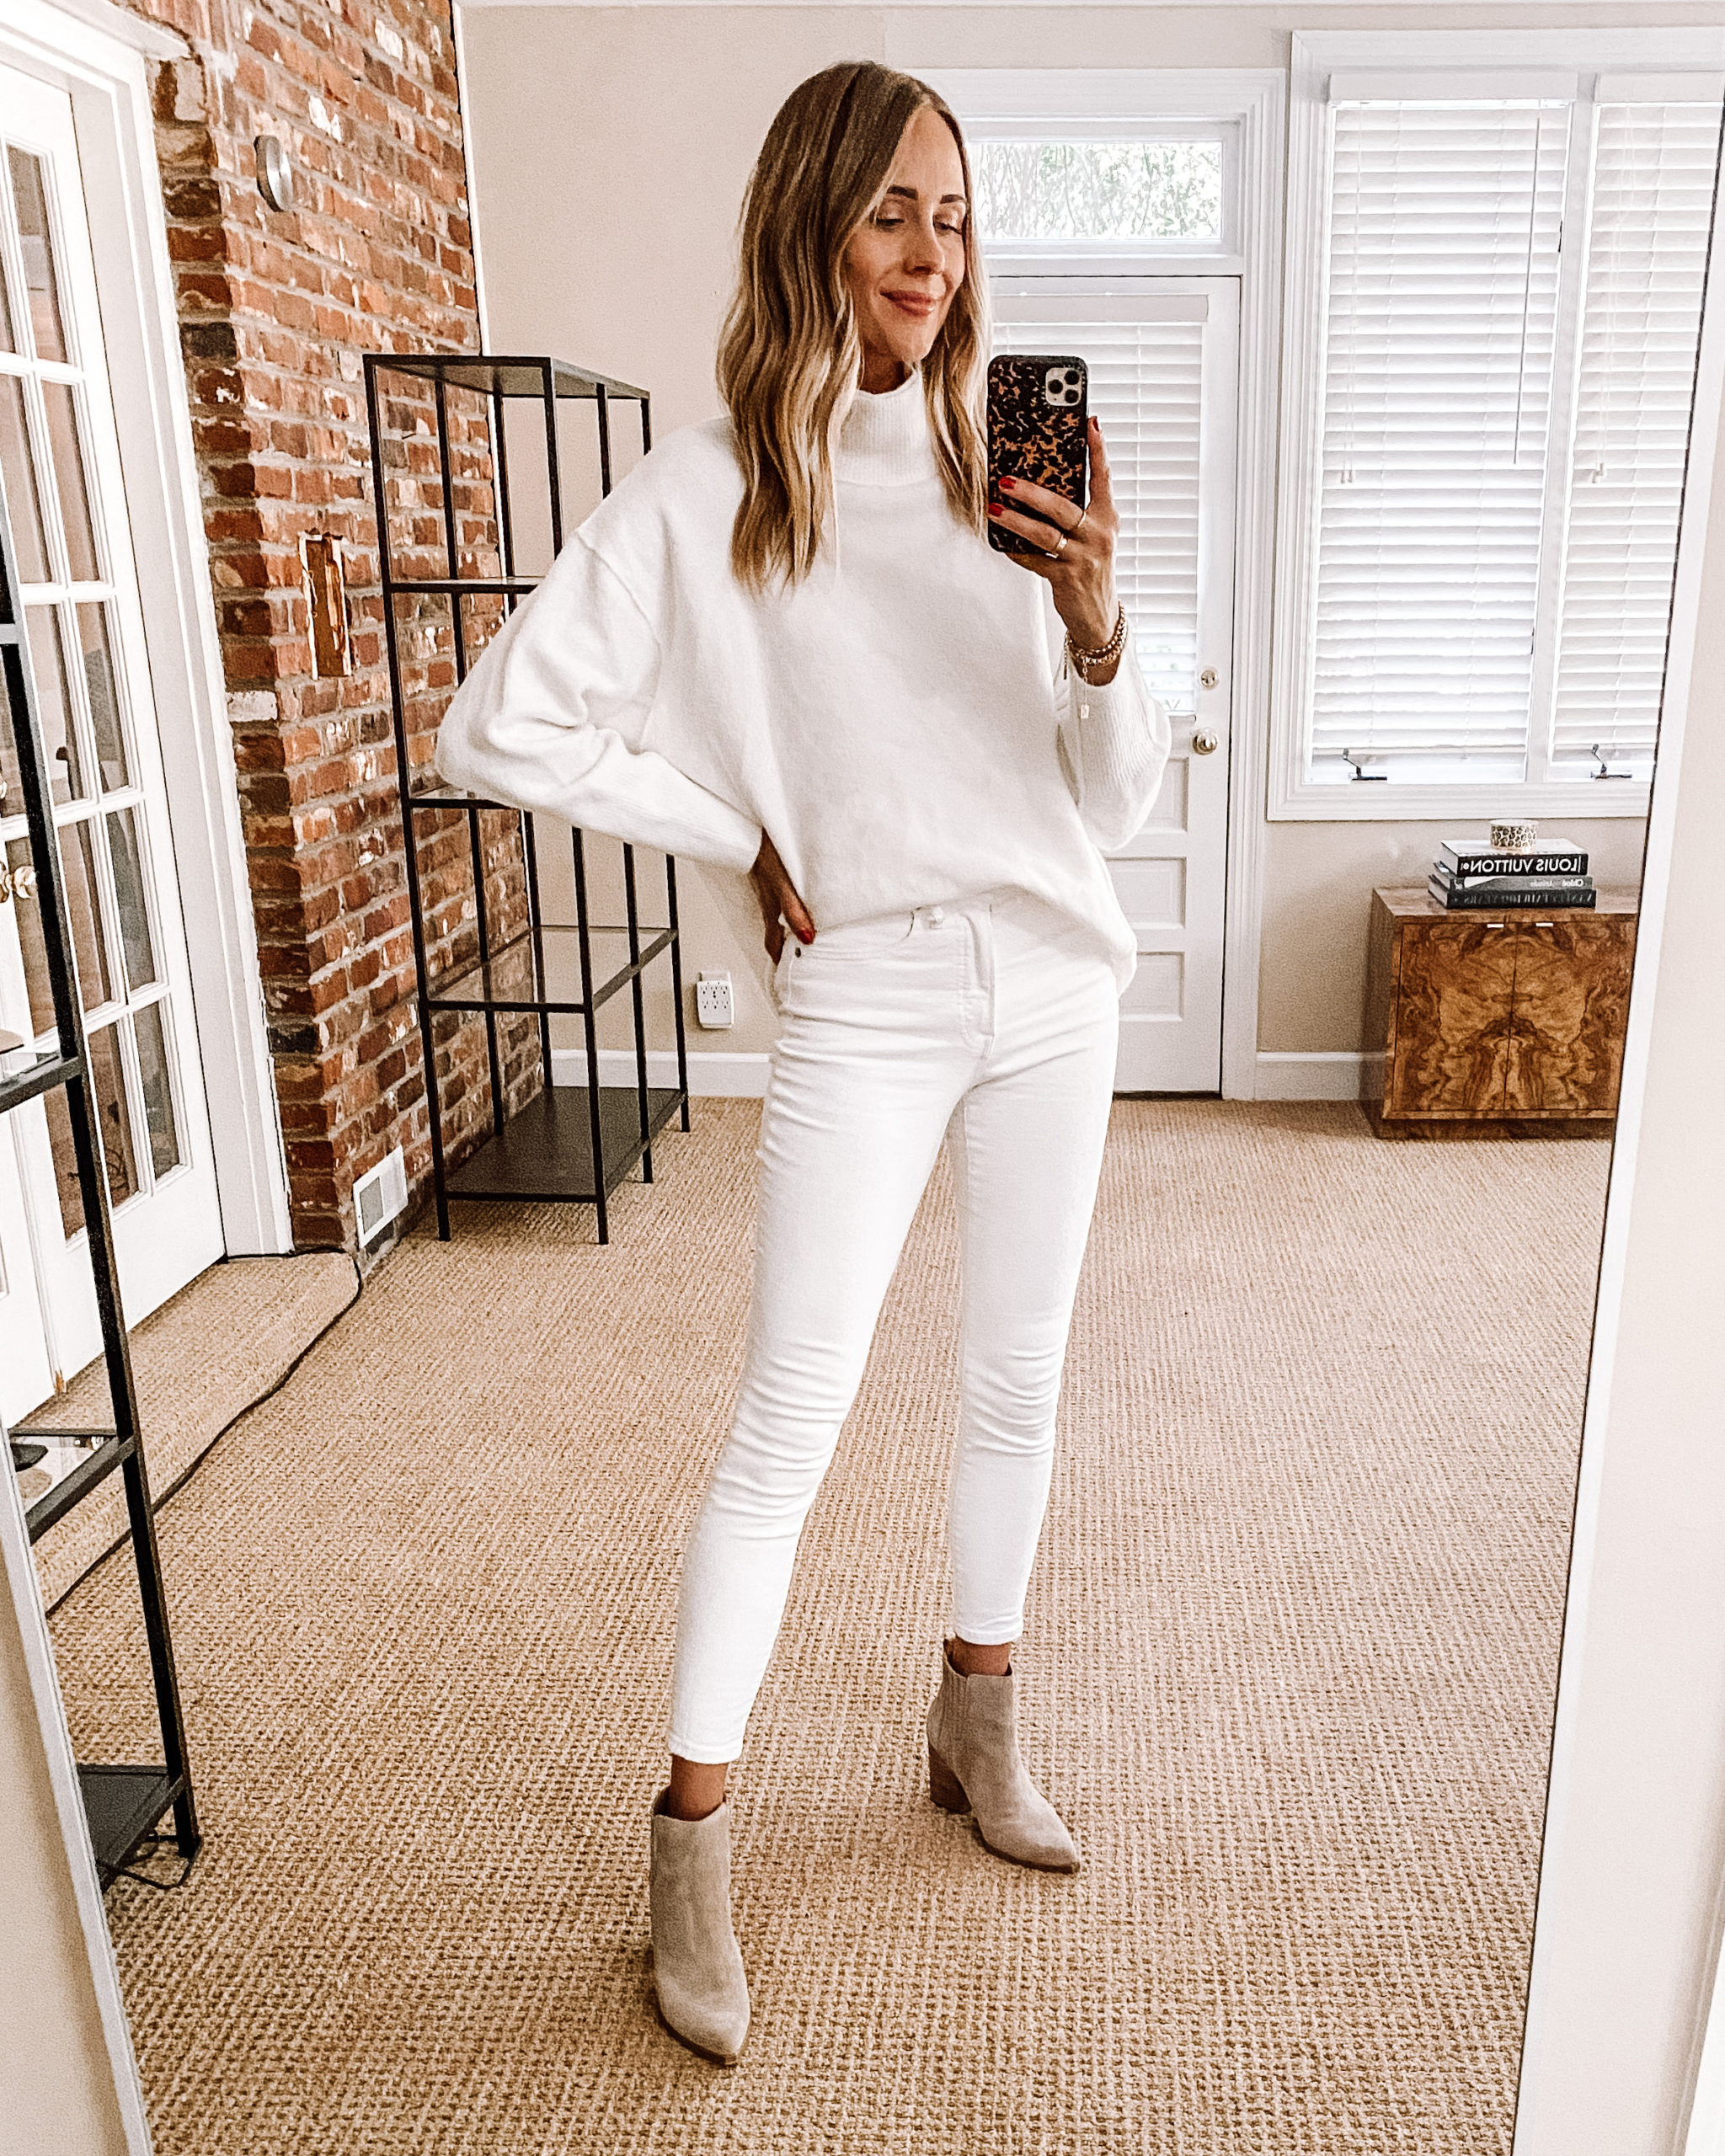 Fashion Jackson Nordstrom Anniversary Sale Free People Afterglow Mock Neck Top White Tunic Sweater White Skinny Jeans Suede Booties